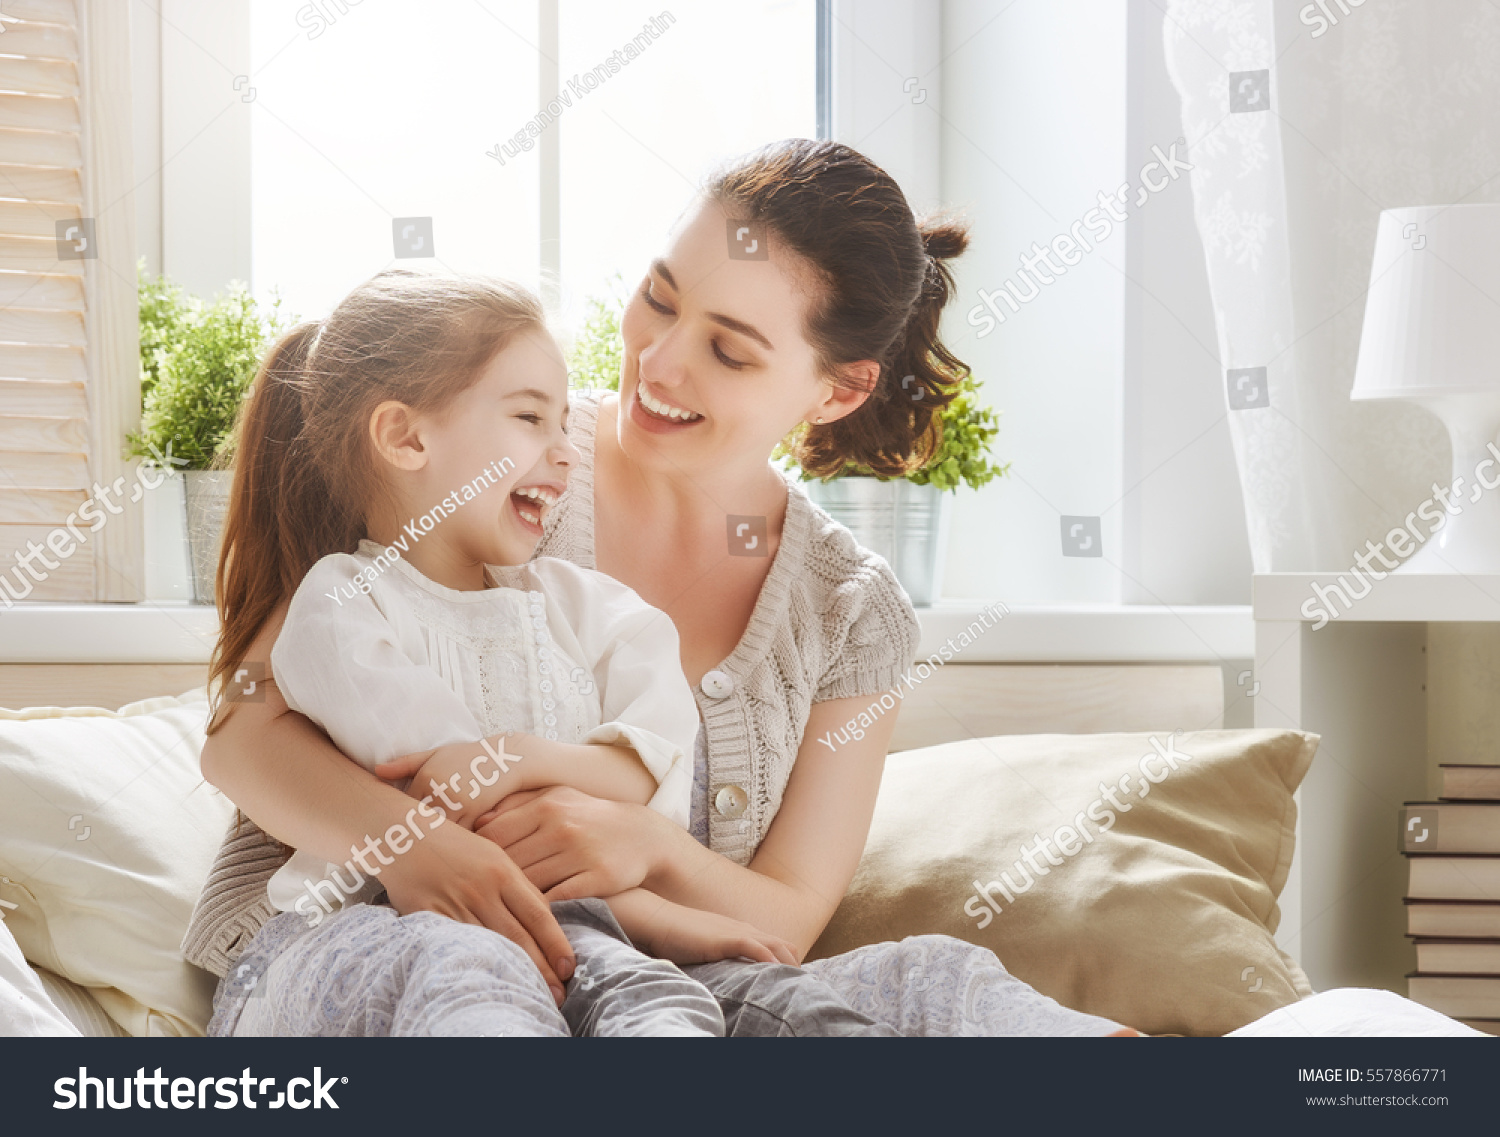 Happy loving family. Mother and her daughter child girl playing and hugging. #557866771